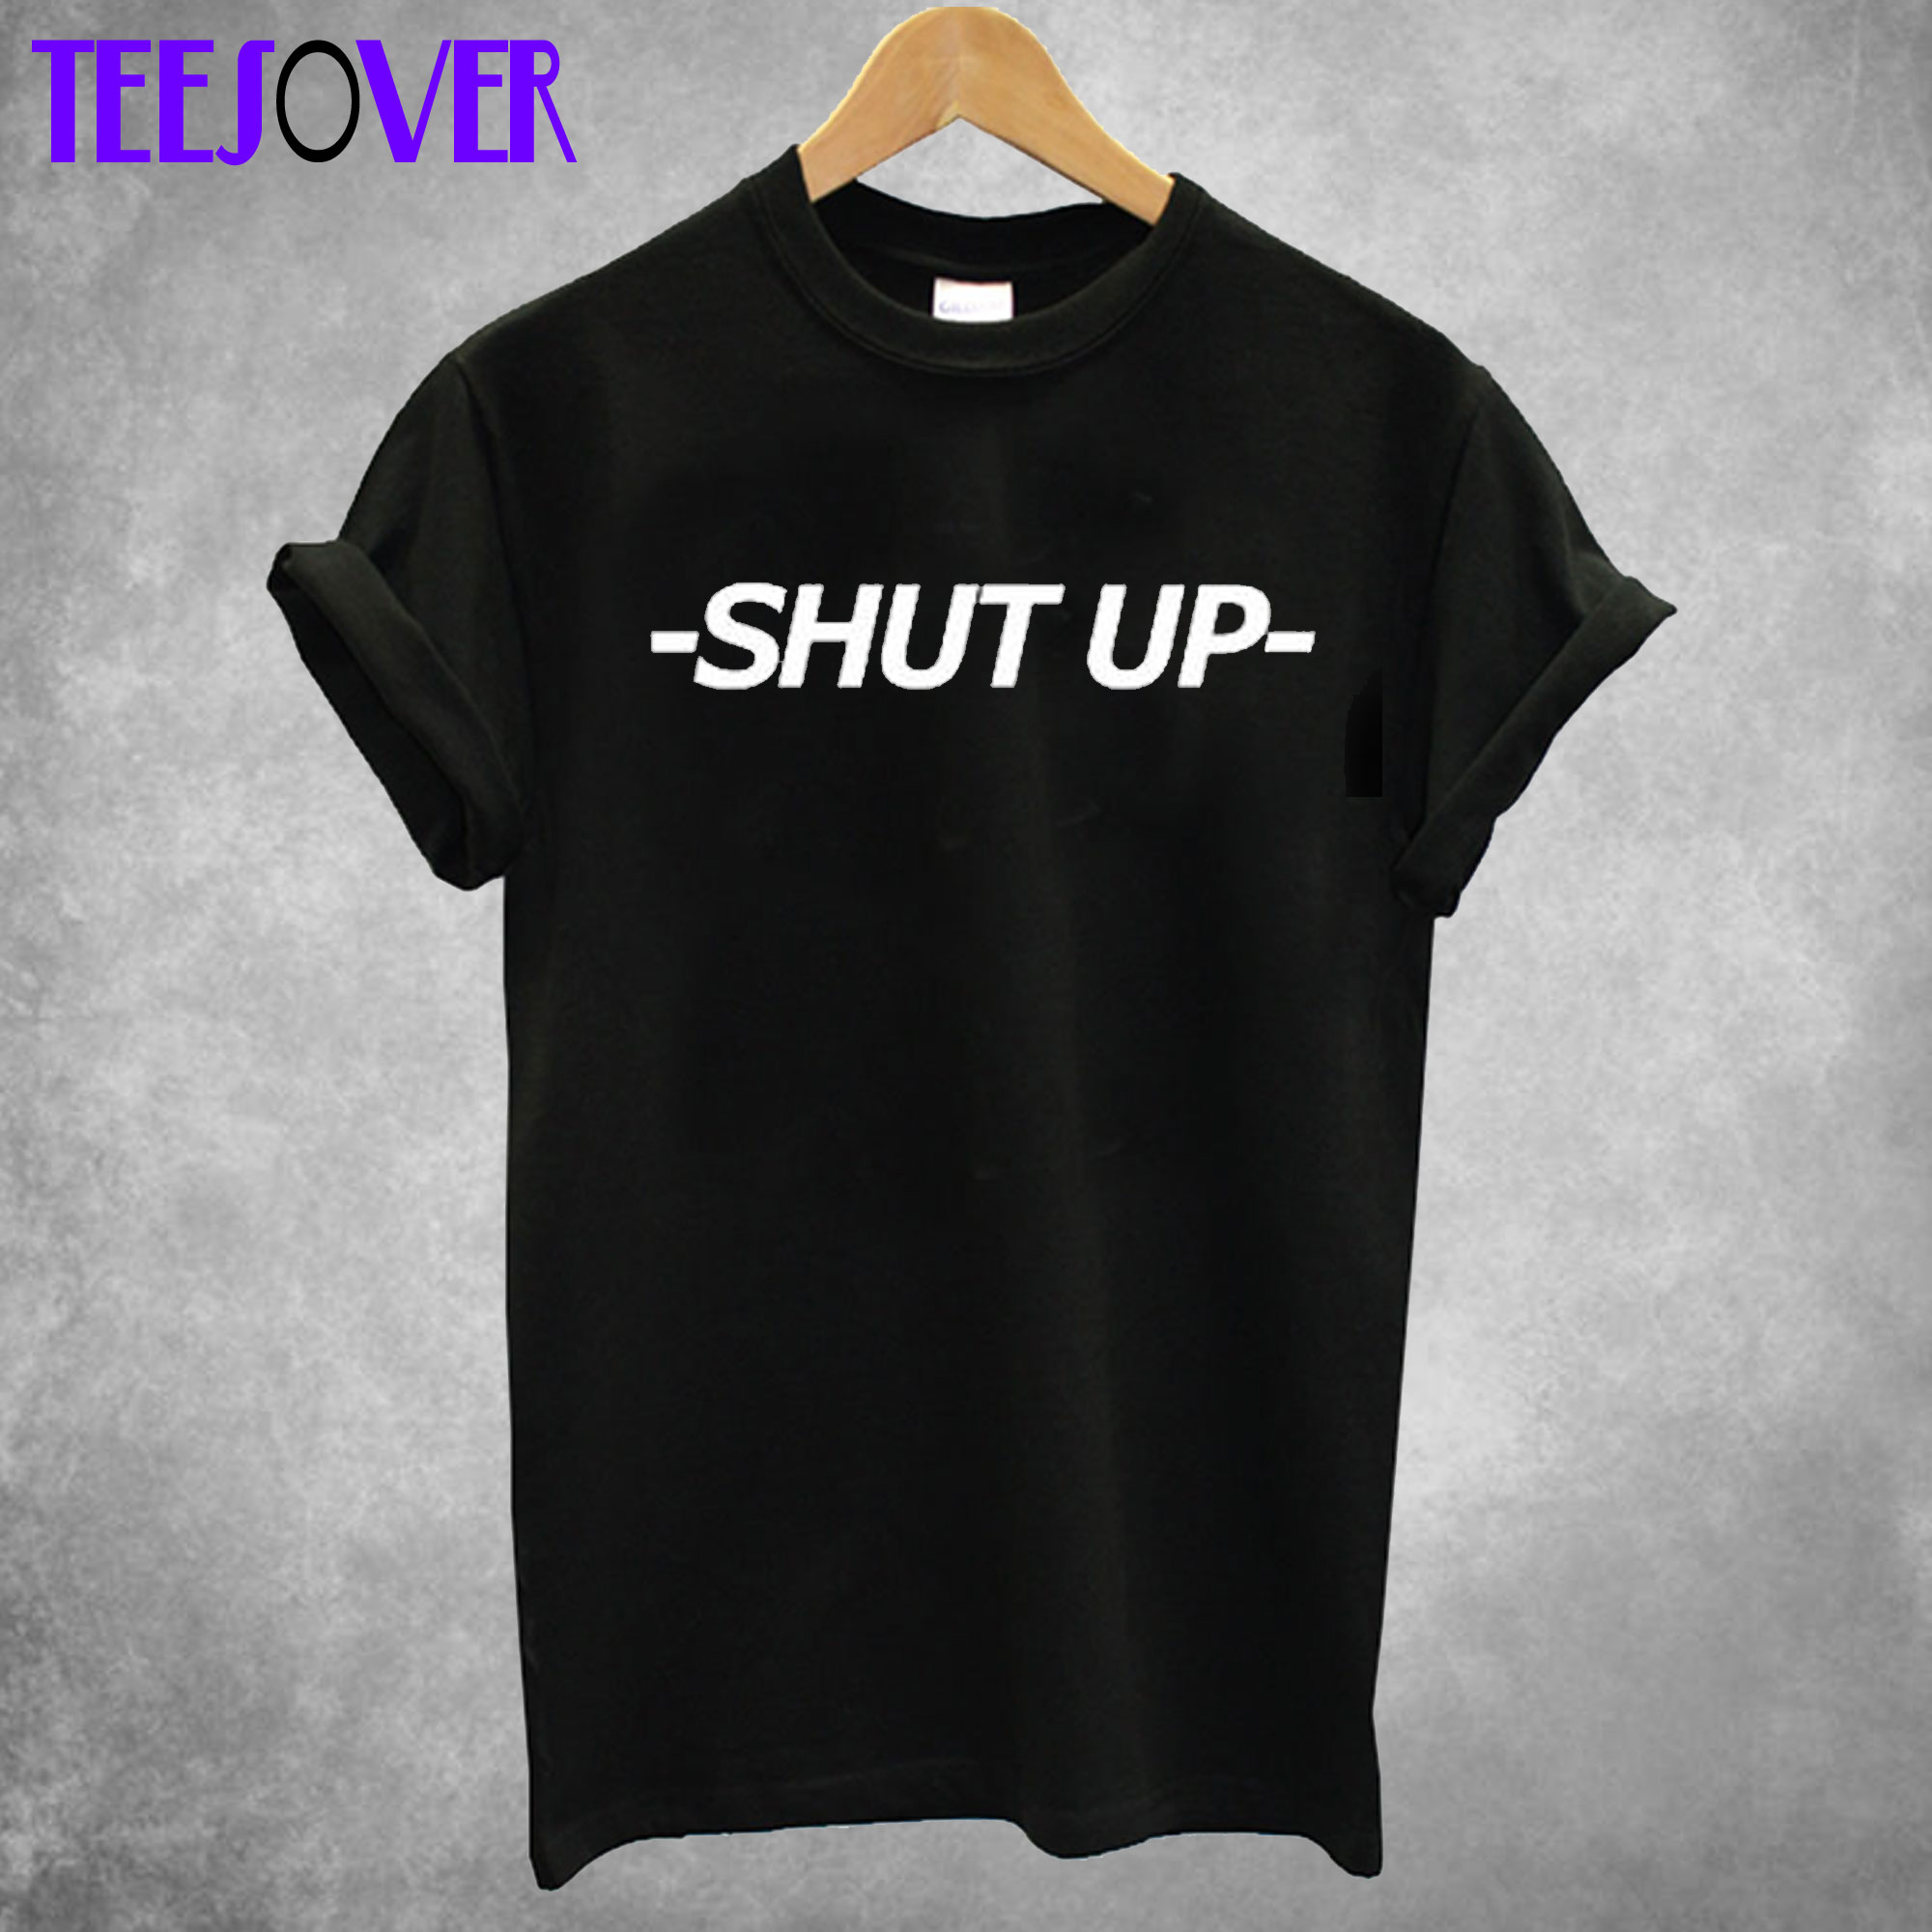 -SHUT UP- Stylish T Shirt